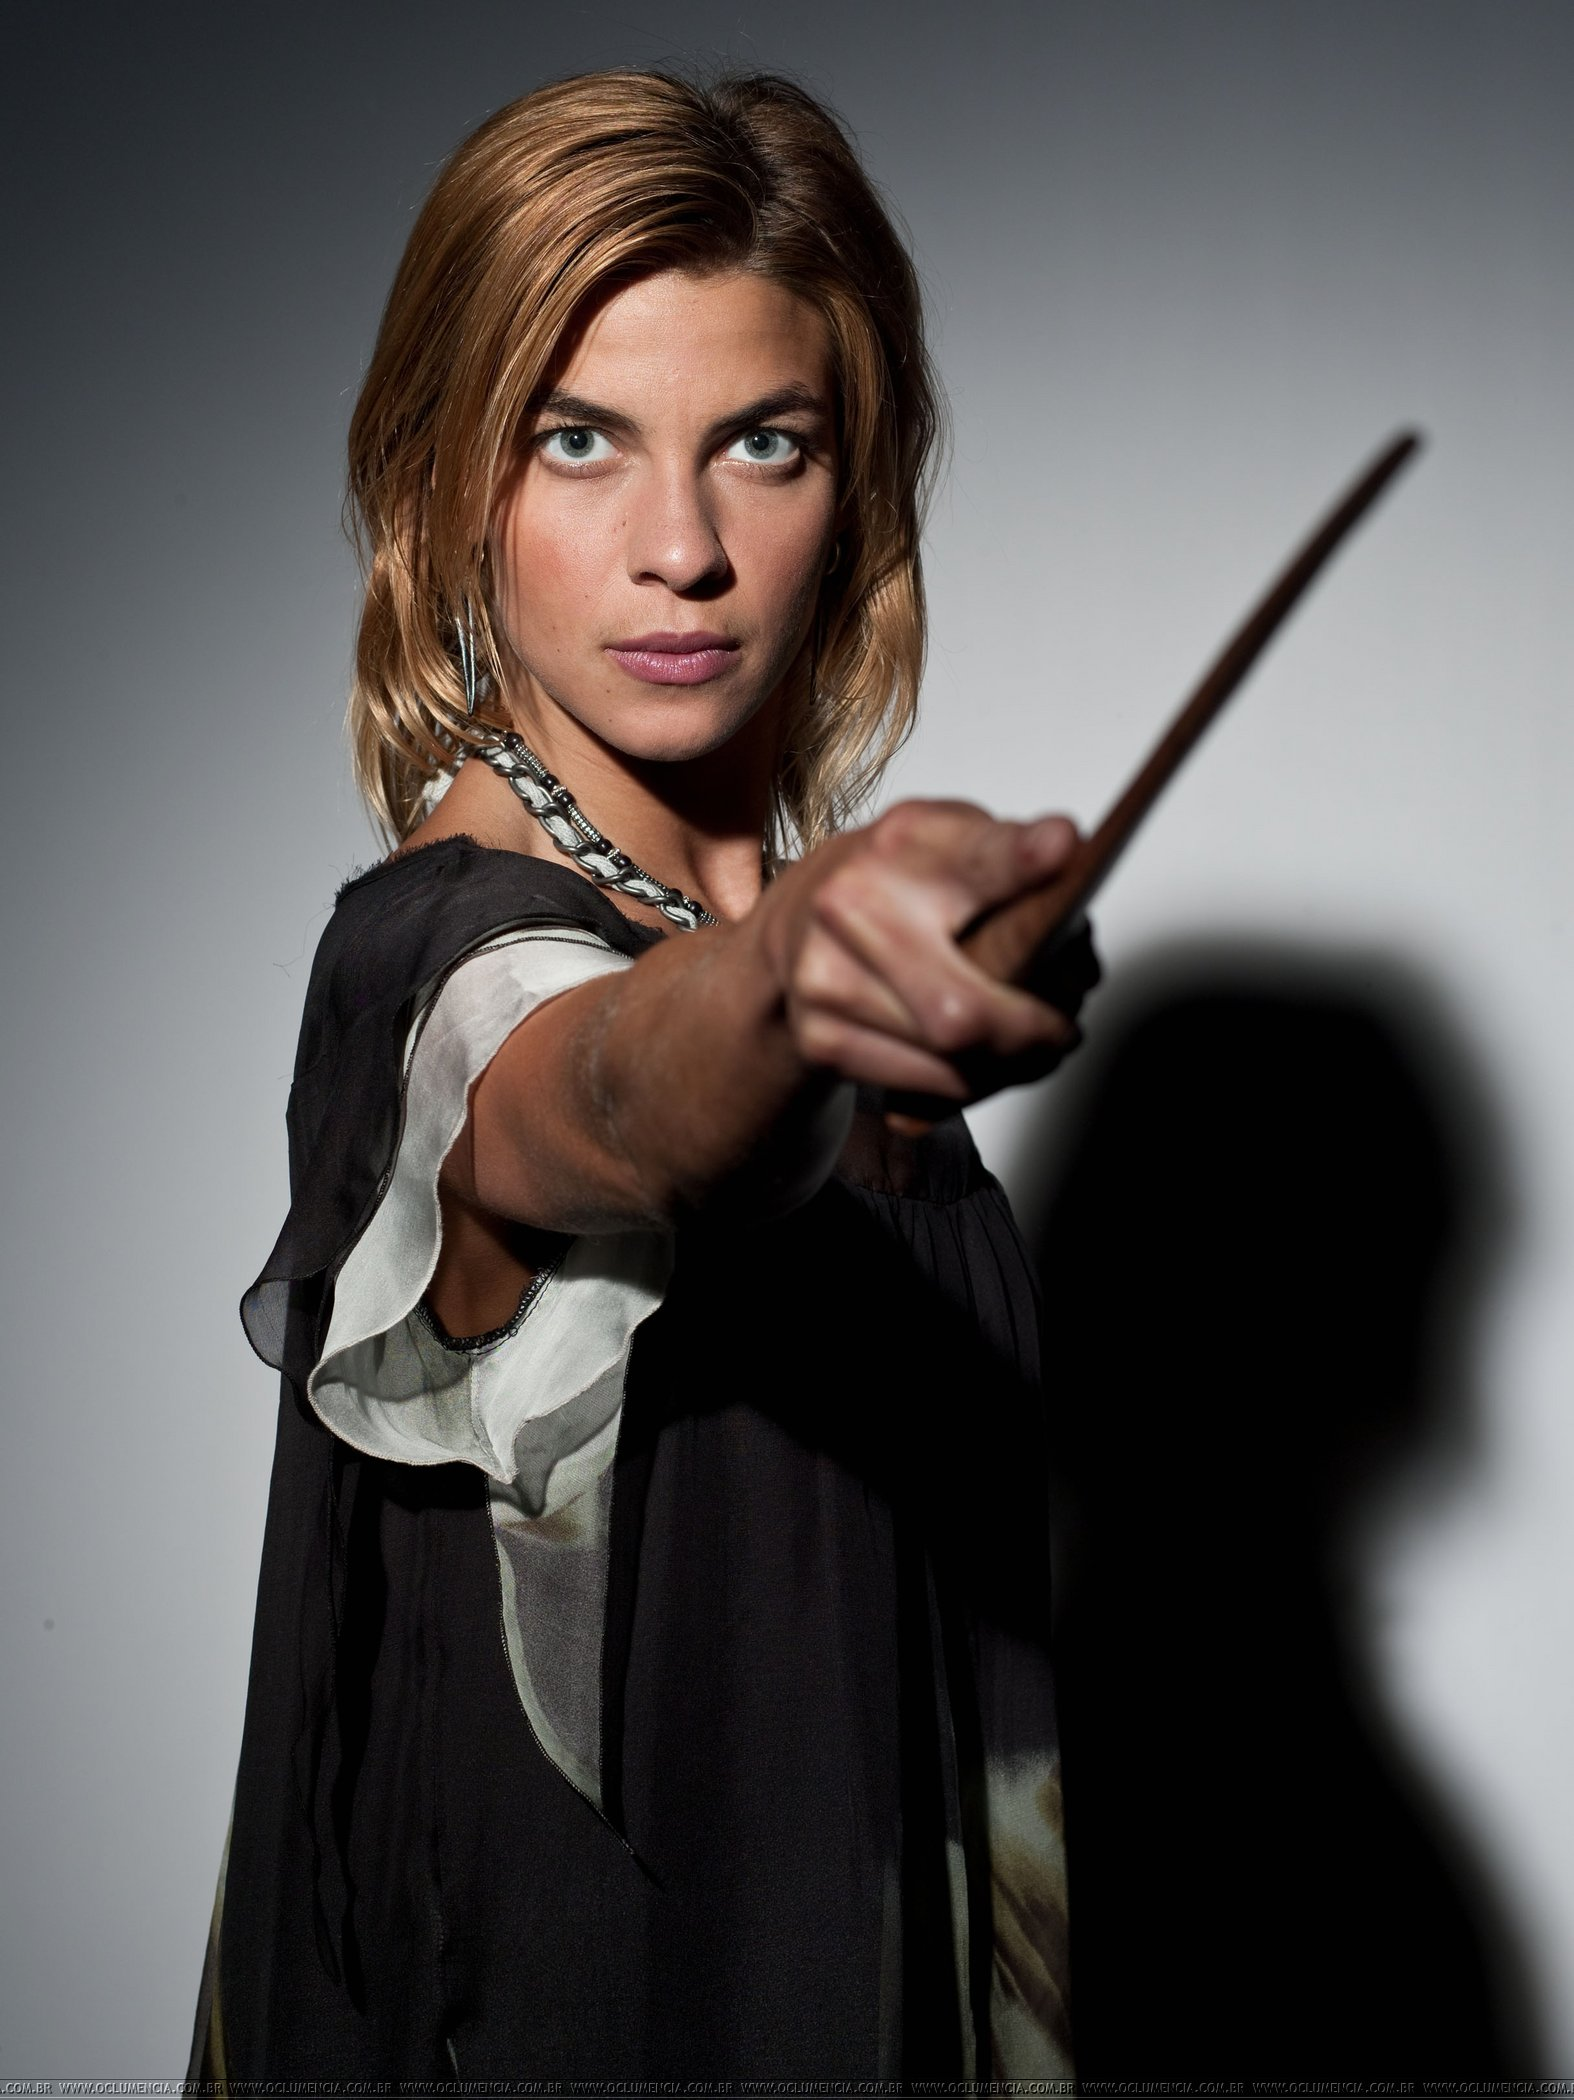 17 Best images about Natalia Tena on Pinterest | Remus ...